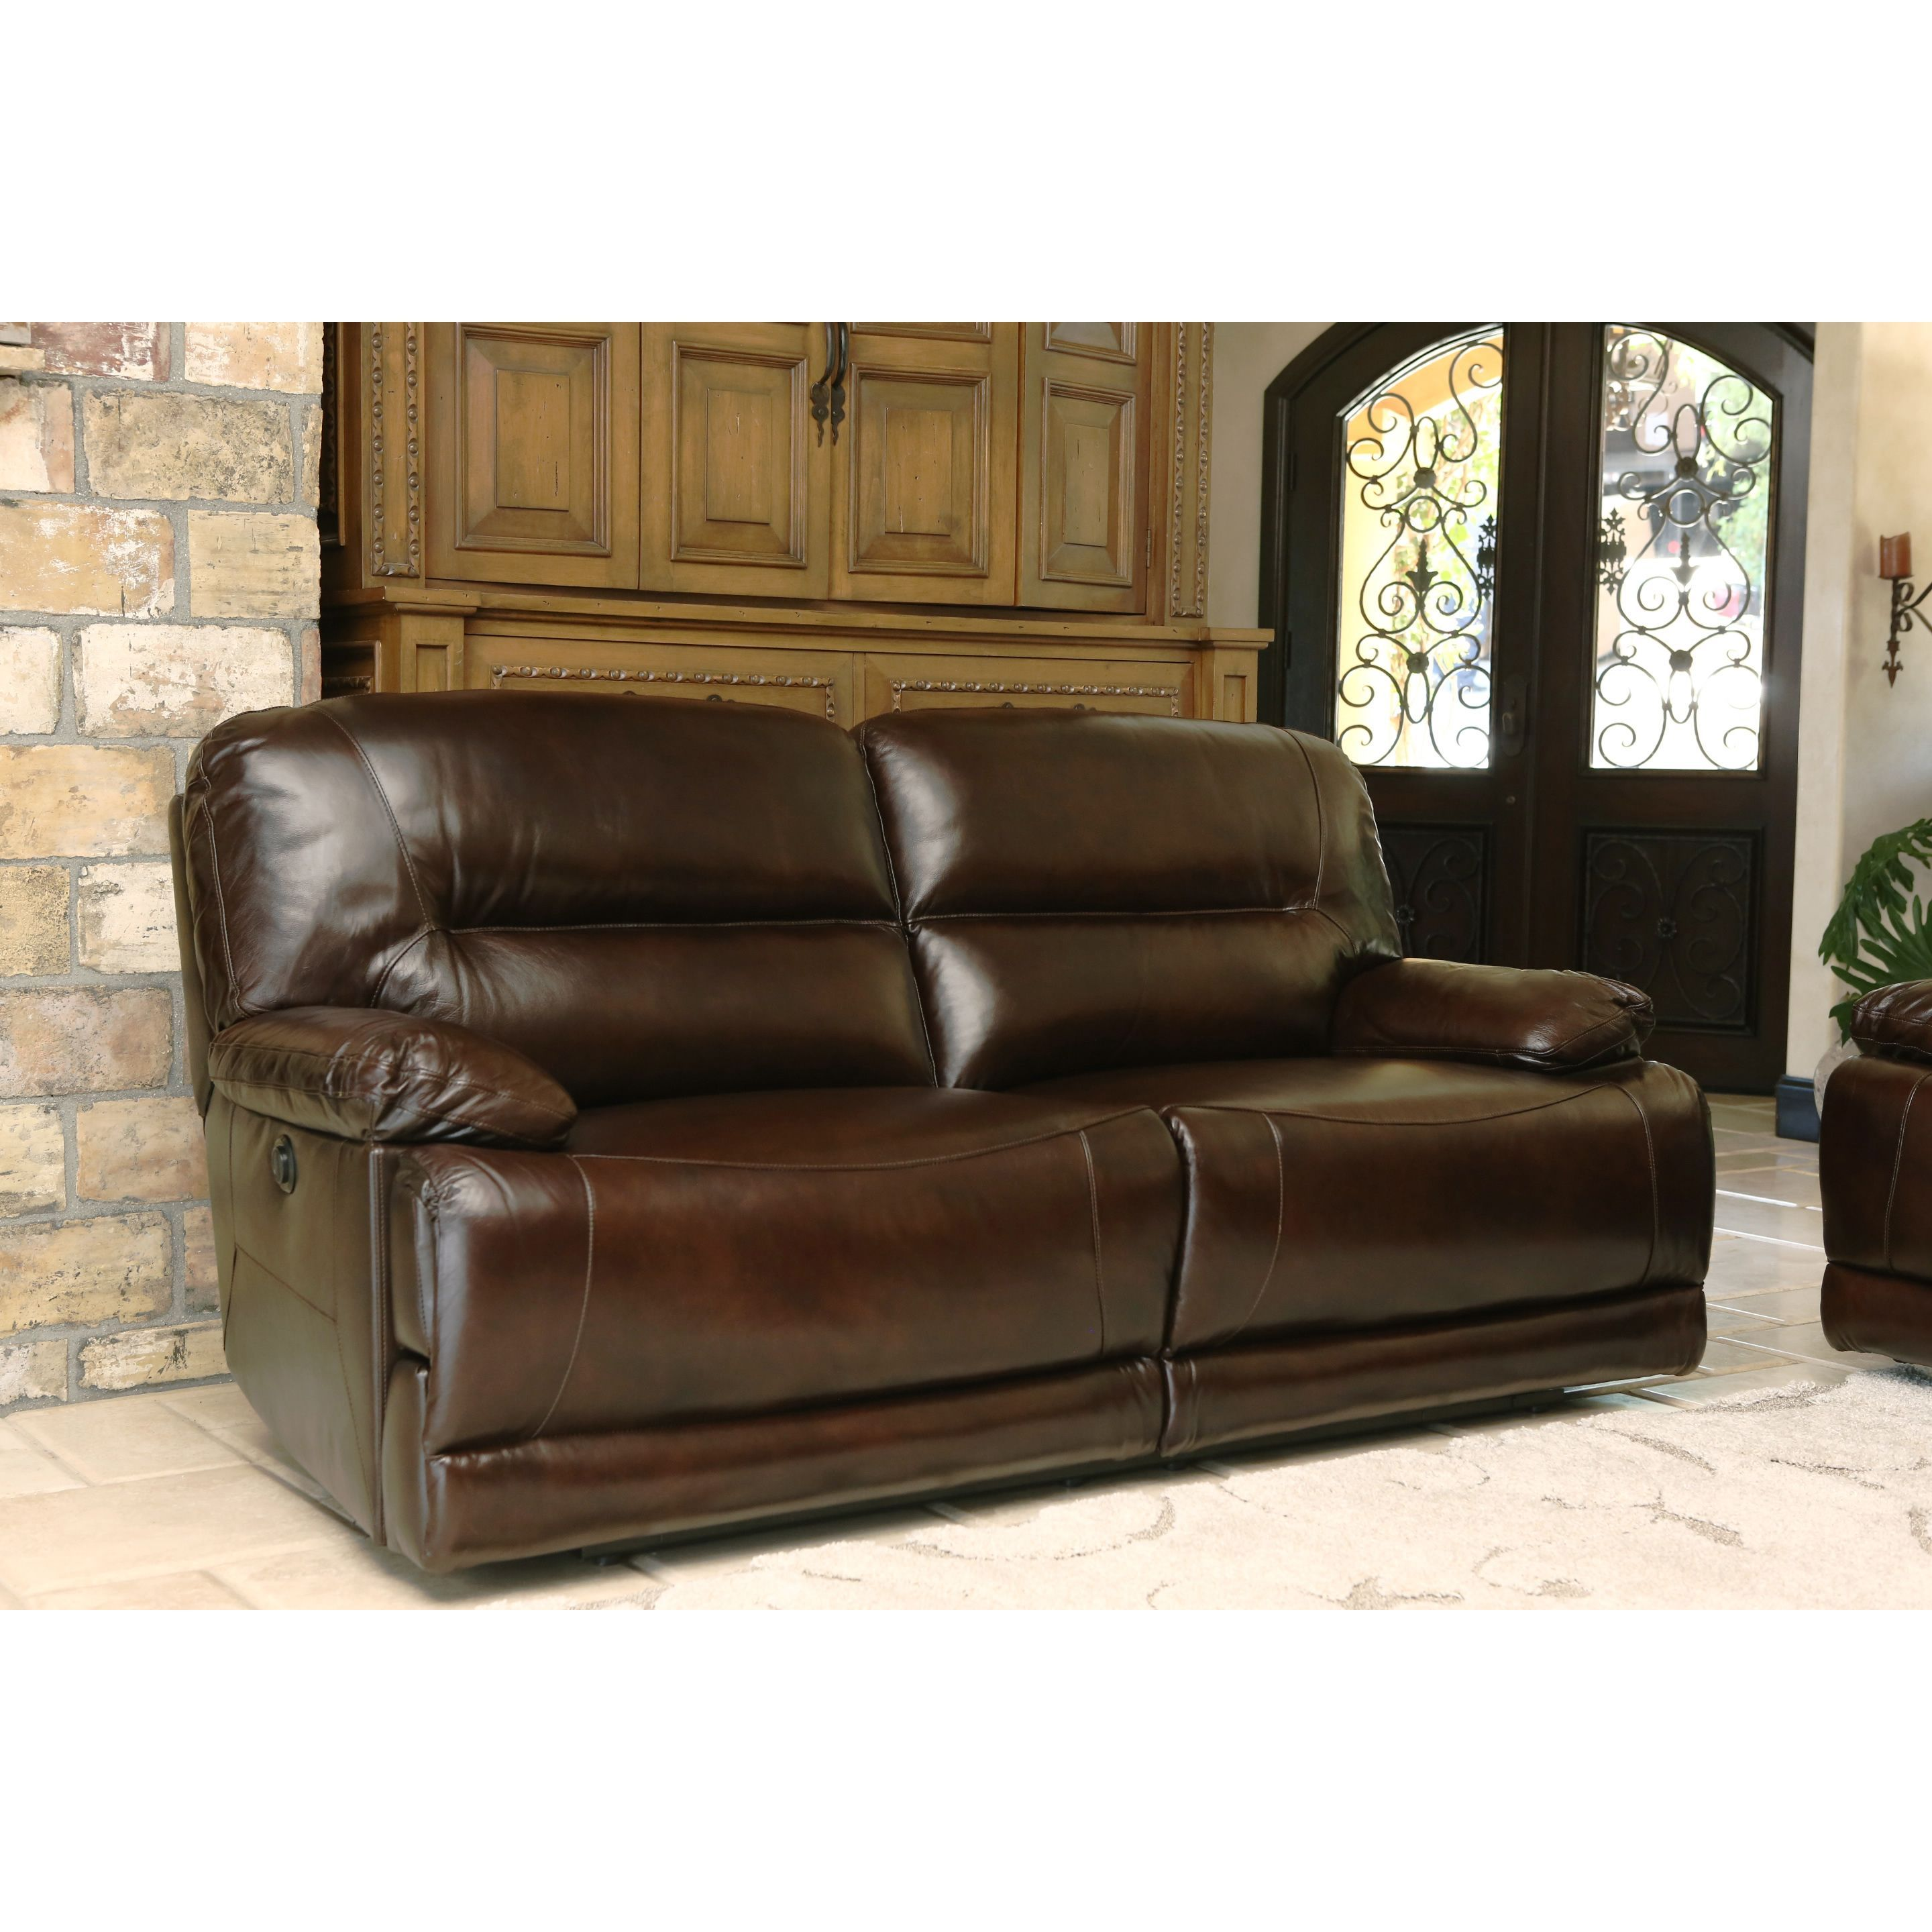 Abbyson Breckinridge Top Grain Leather Power Reclining